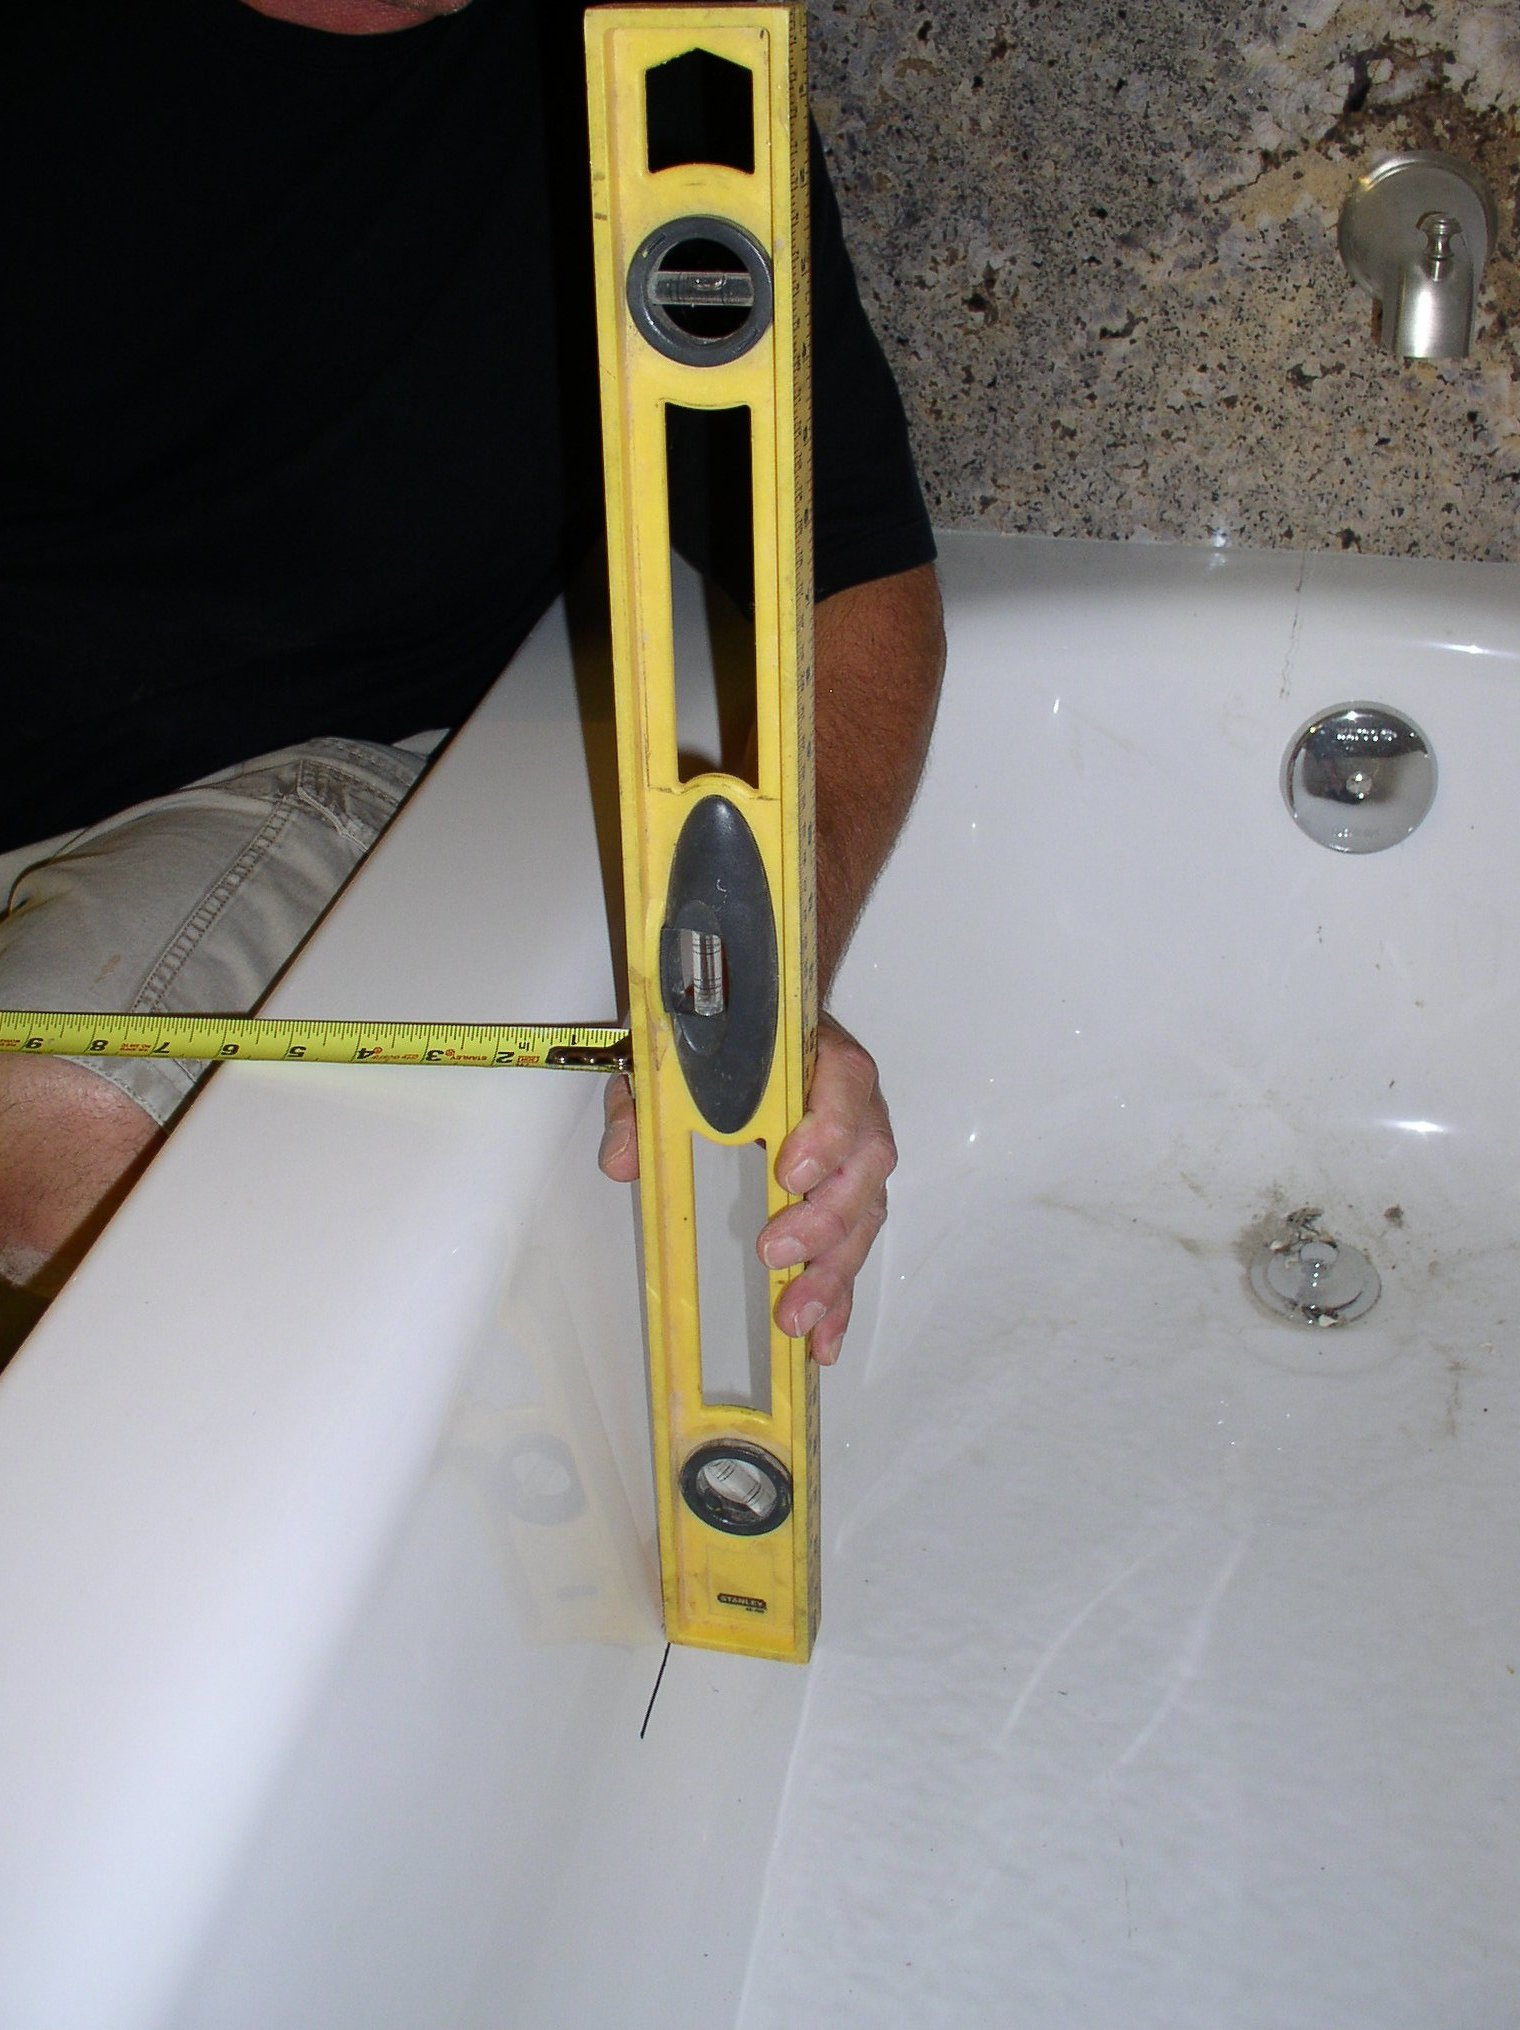 Image depicting the key measurement for determining the correct tub to shower conversion kit for a tub